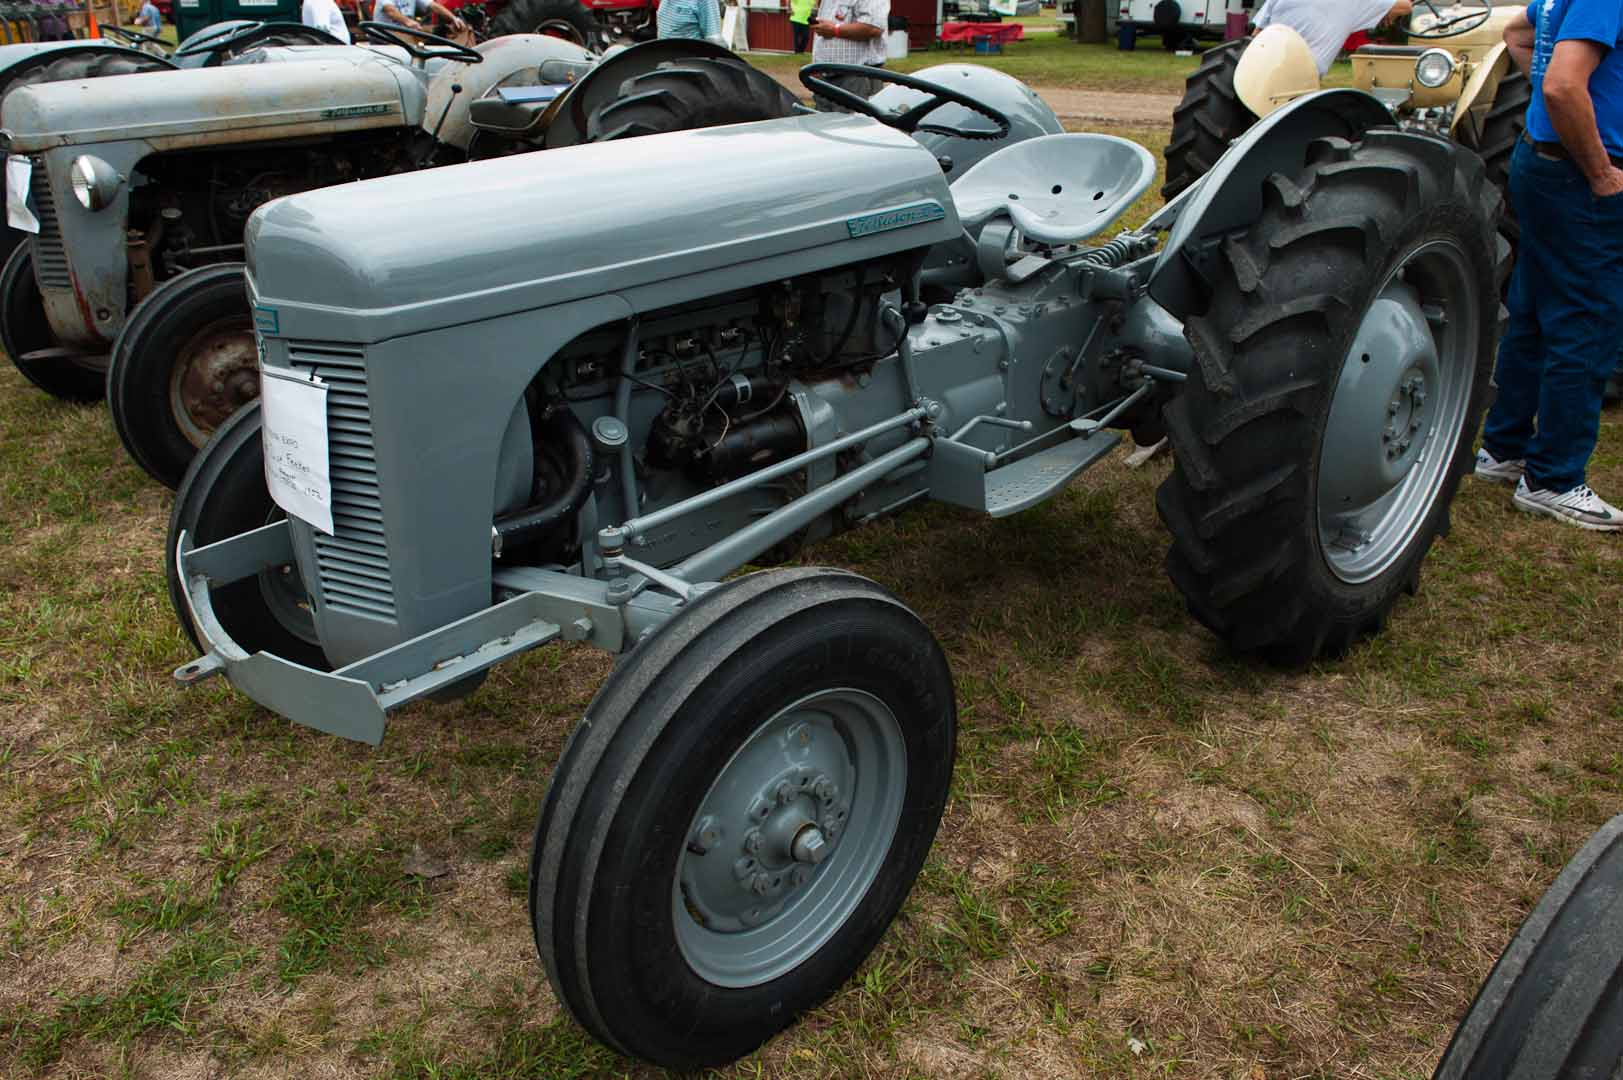 1952 TO-30 owned by Don Feekes of Wichita, KS. SN TO-88937. Has less than 50 running hours.